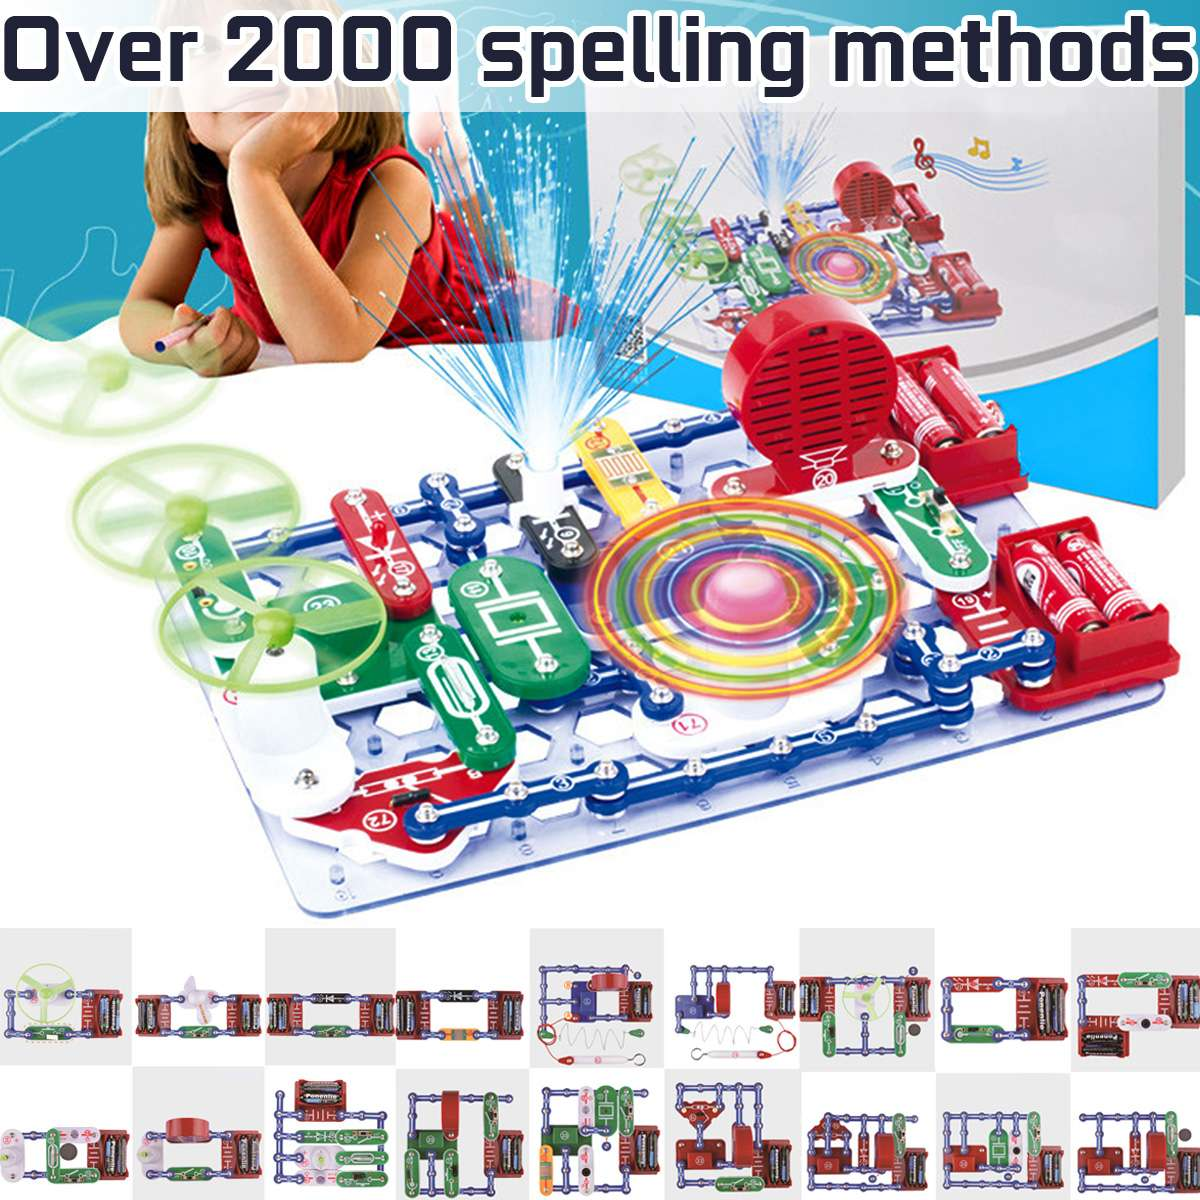 Over 2000 Kinds Compound Mode Electronics Discovery Blocks Kit Electric Circuits Educational DIY Assembling Toys For Children